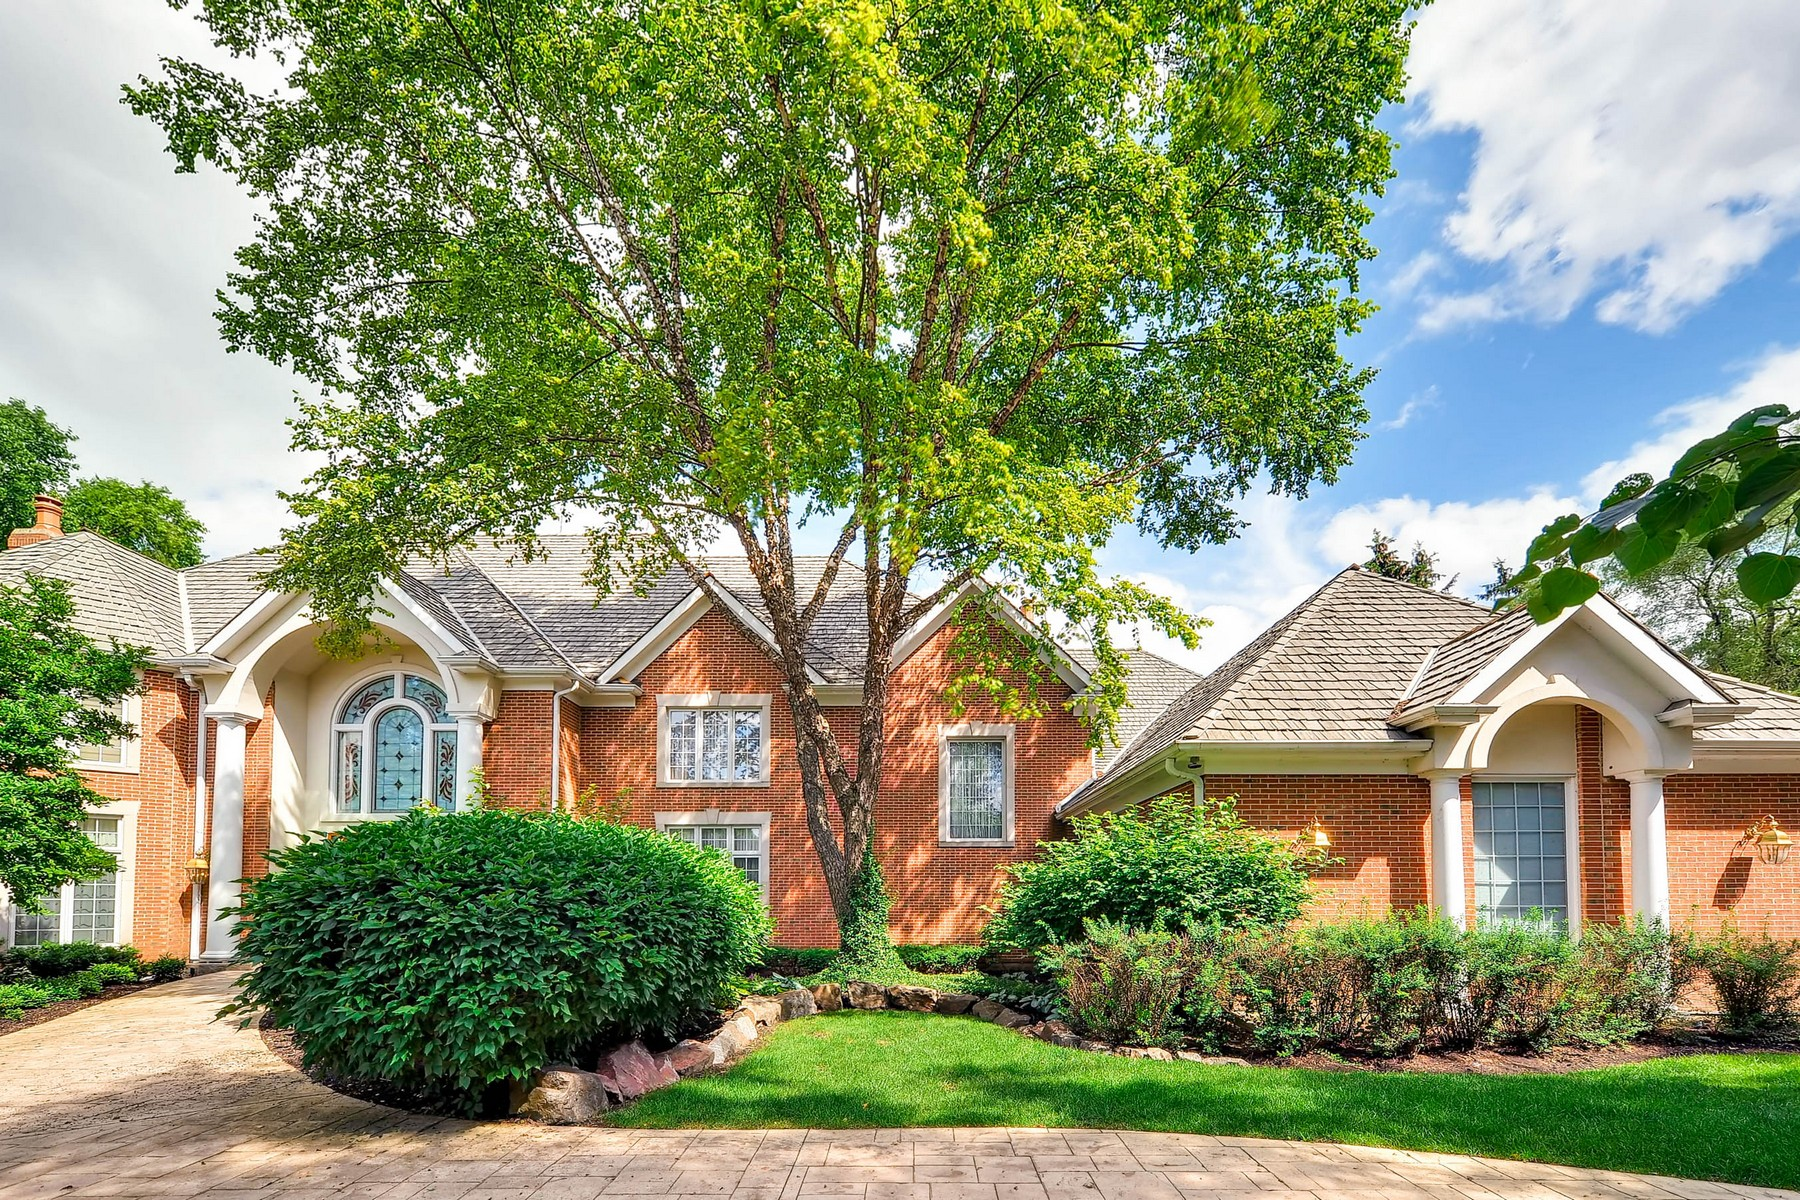 Single Family Home for Sale at Prepare To Be Wowed 33 Polo Drive South Barrington, 60010 United States